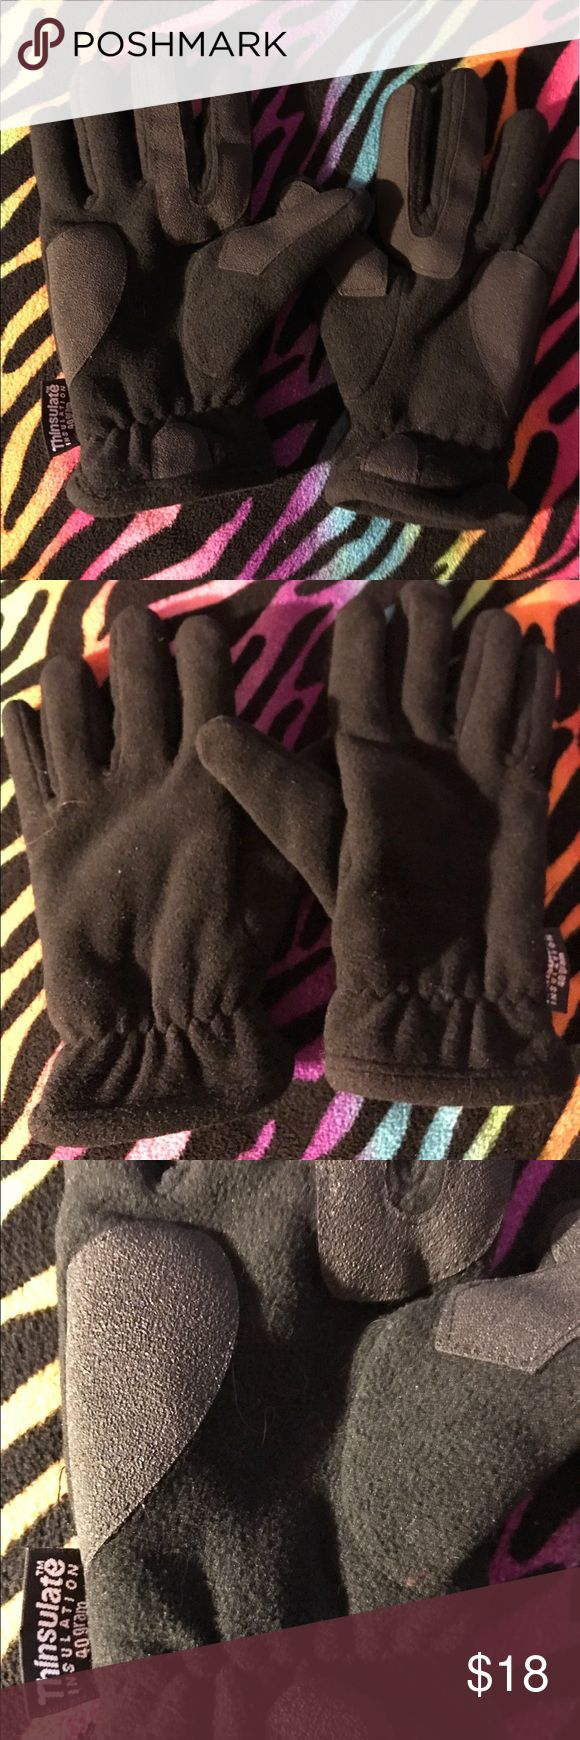 Leather thinsulate gloves 🏔 Thinsulate insulation leather gloves. My fingers are way too short for them but they will keep your hands warm. Offers welcome 💁 Thinsulate Accessories Gloves & Mittens